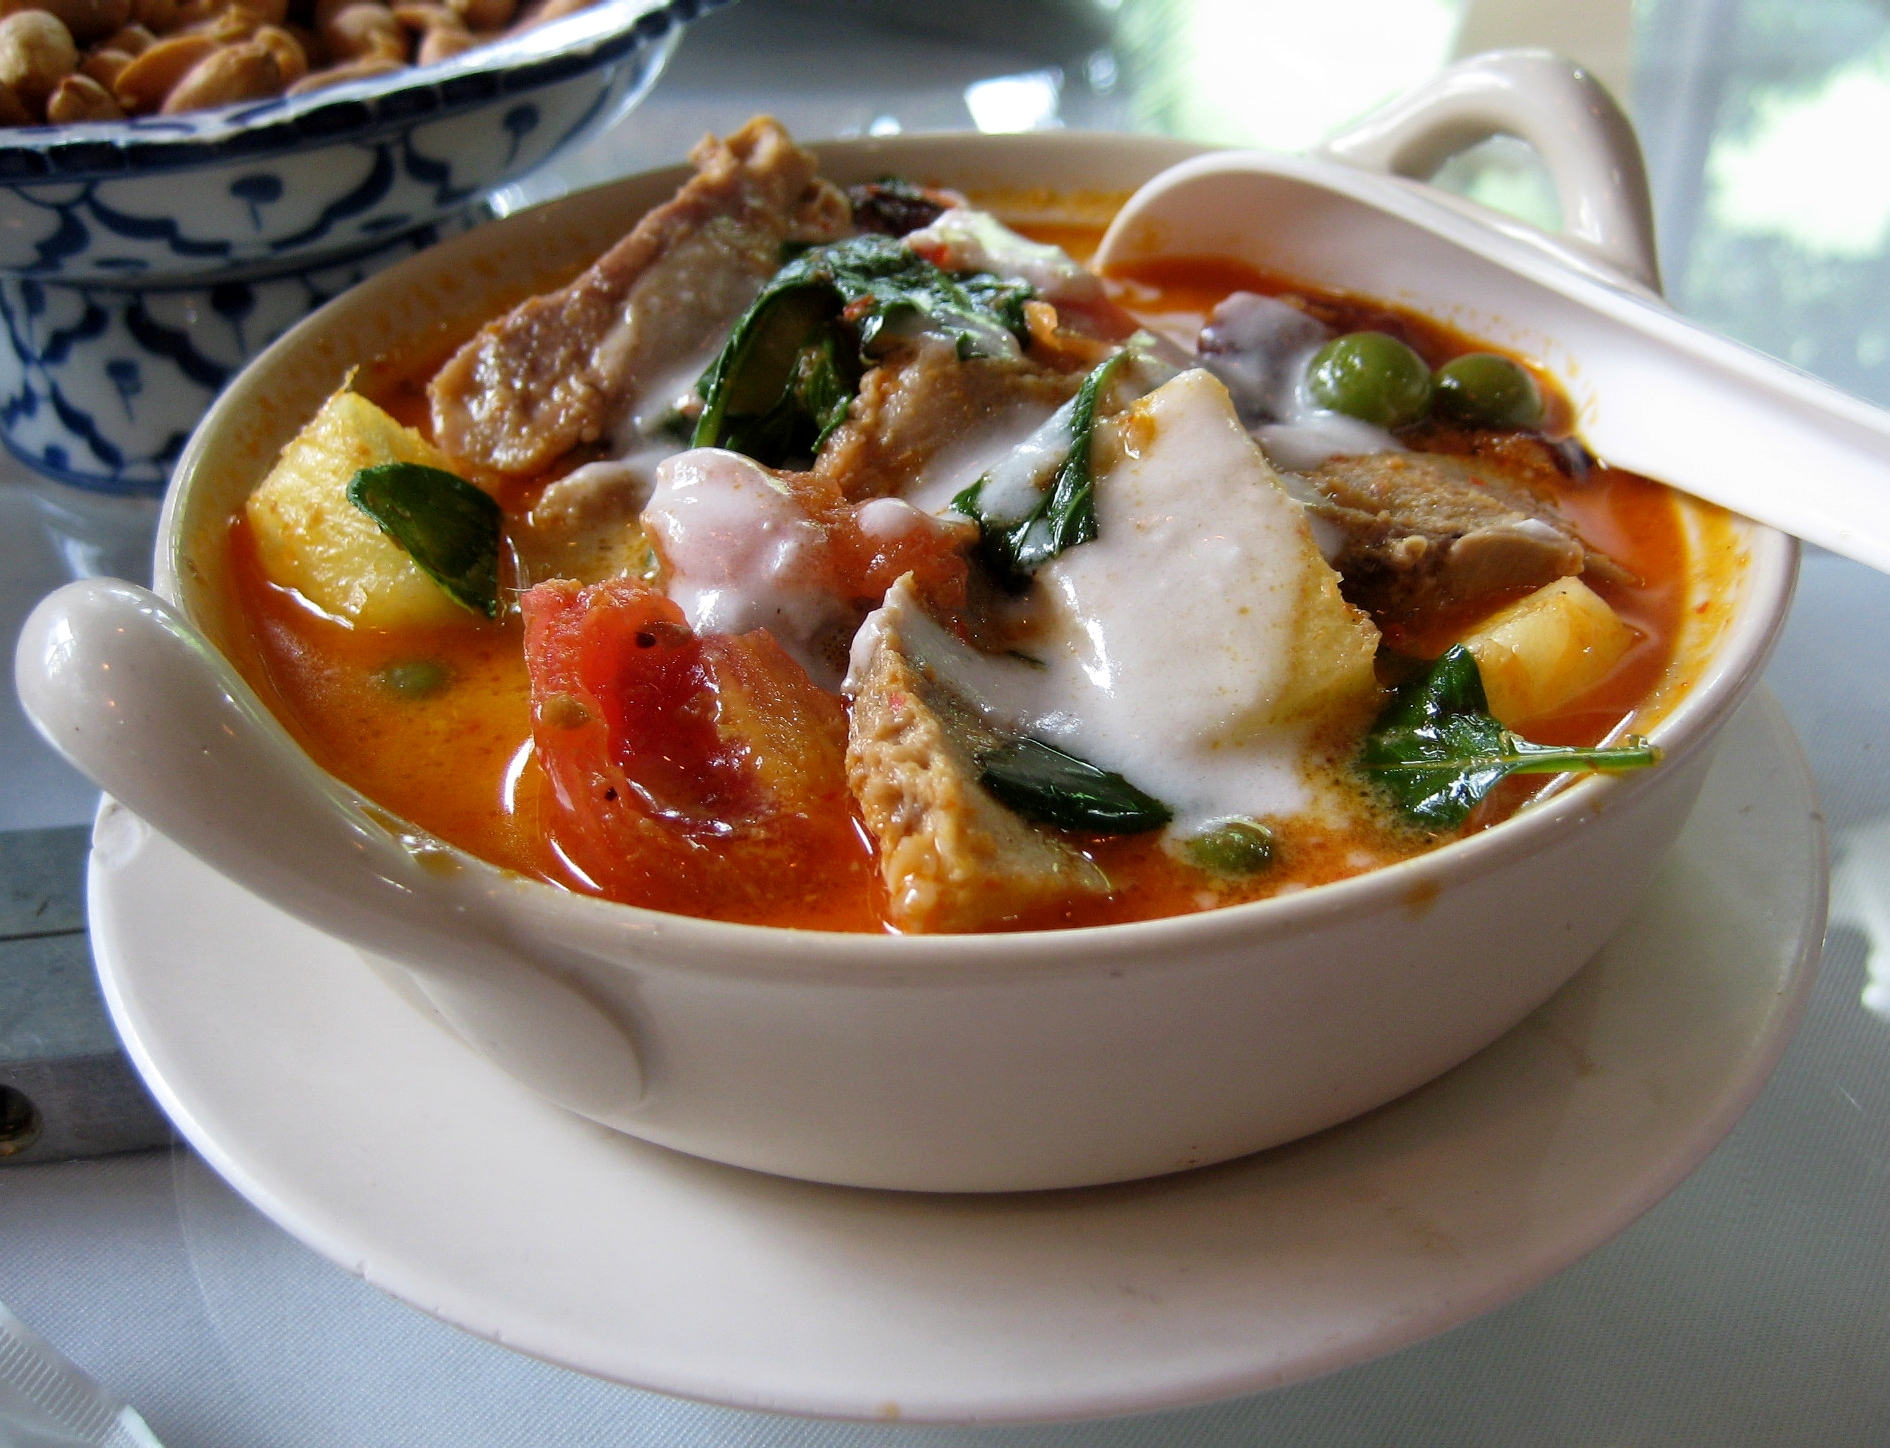 File:Red roast duck curry.jpg - Wikipedia, the free encyclopedia